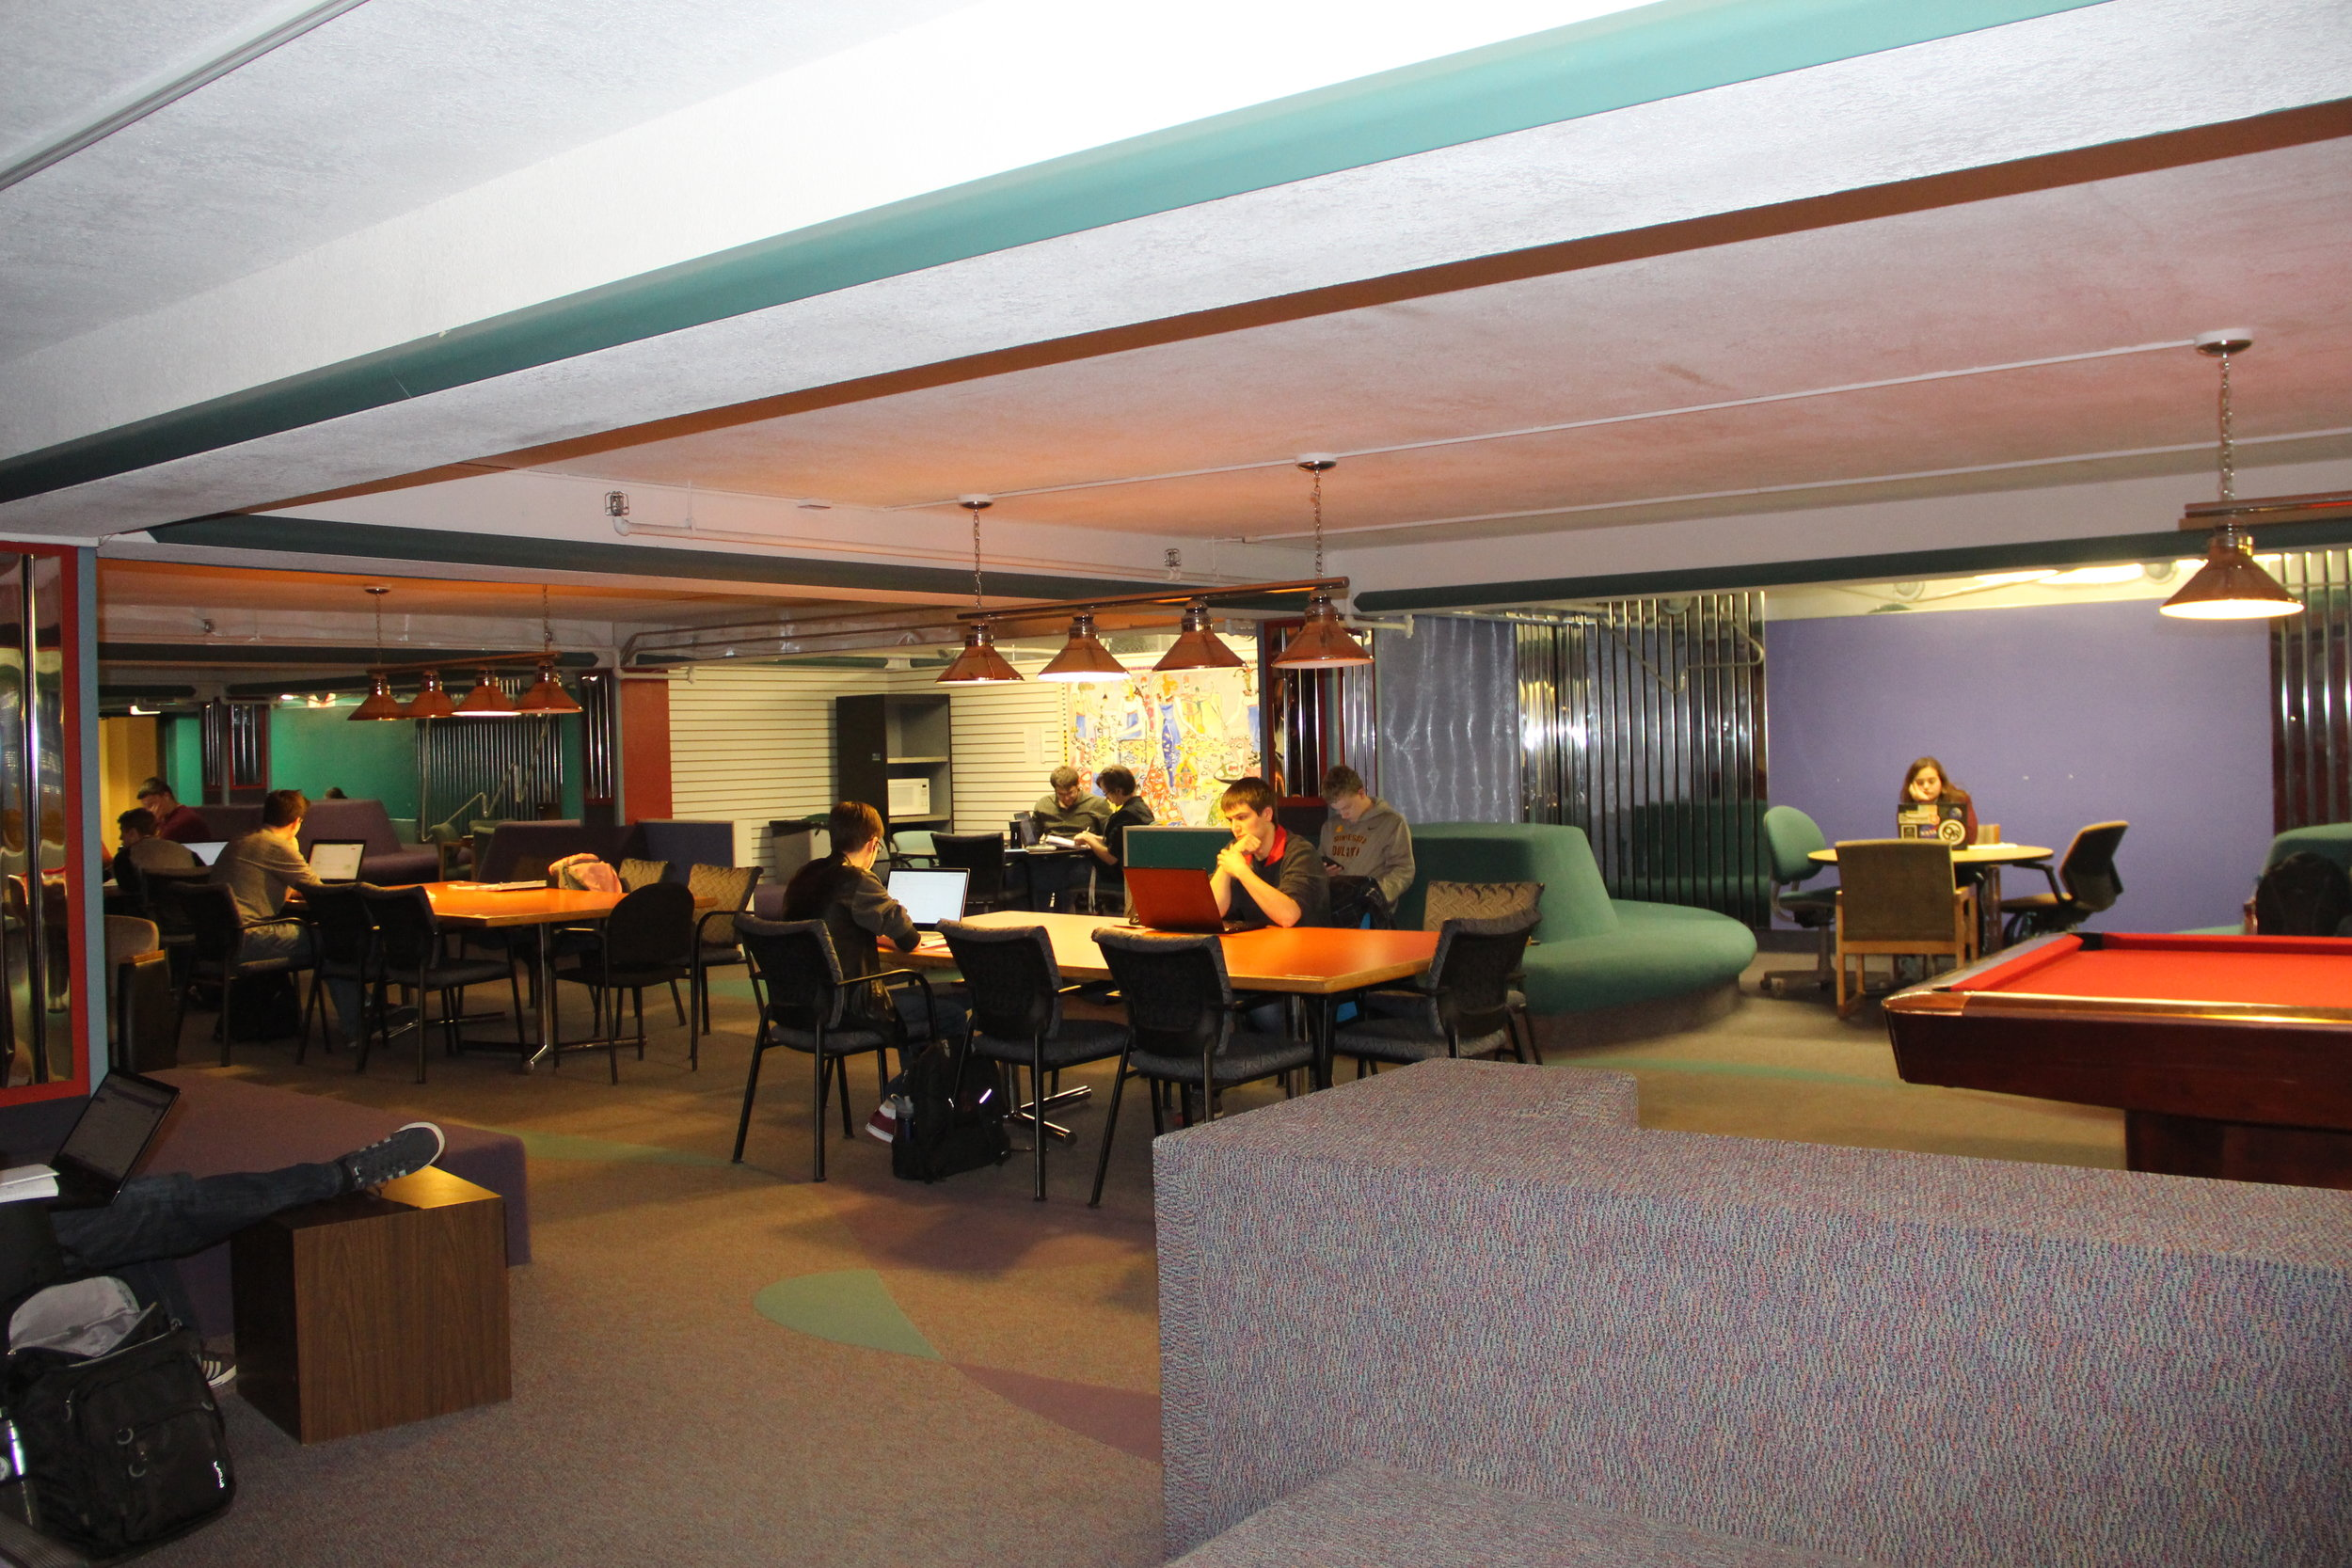 One of the most unique study areas at UMD, the Kirby Underground Lounge features quiet study areas, music and games. Photo by Tyler Schendel.